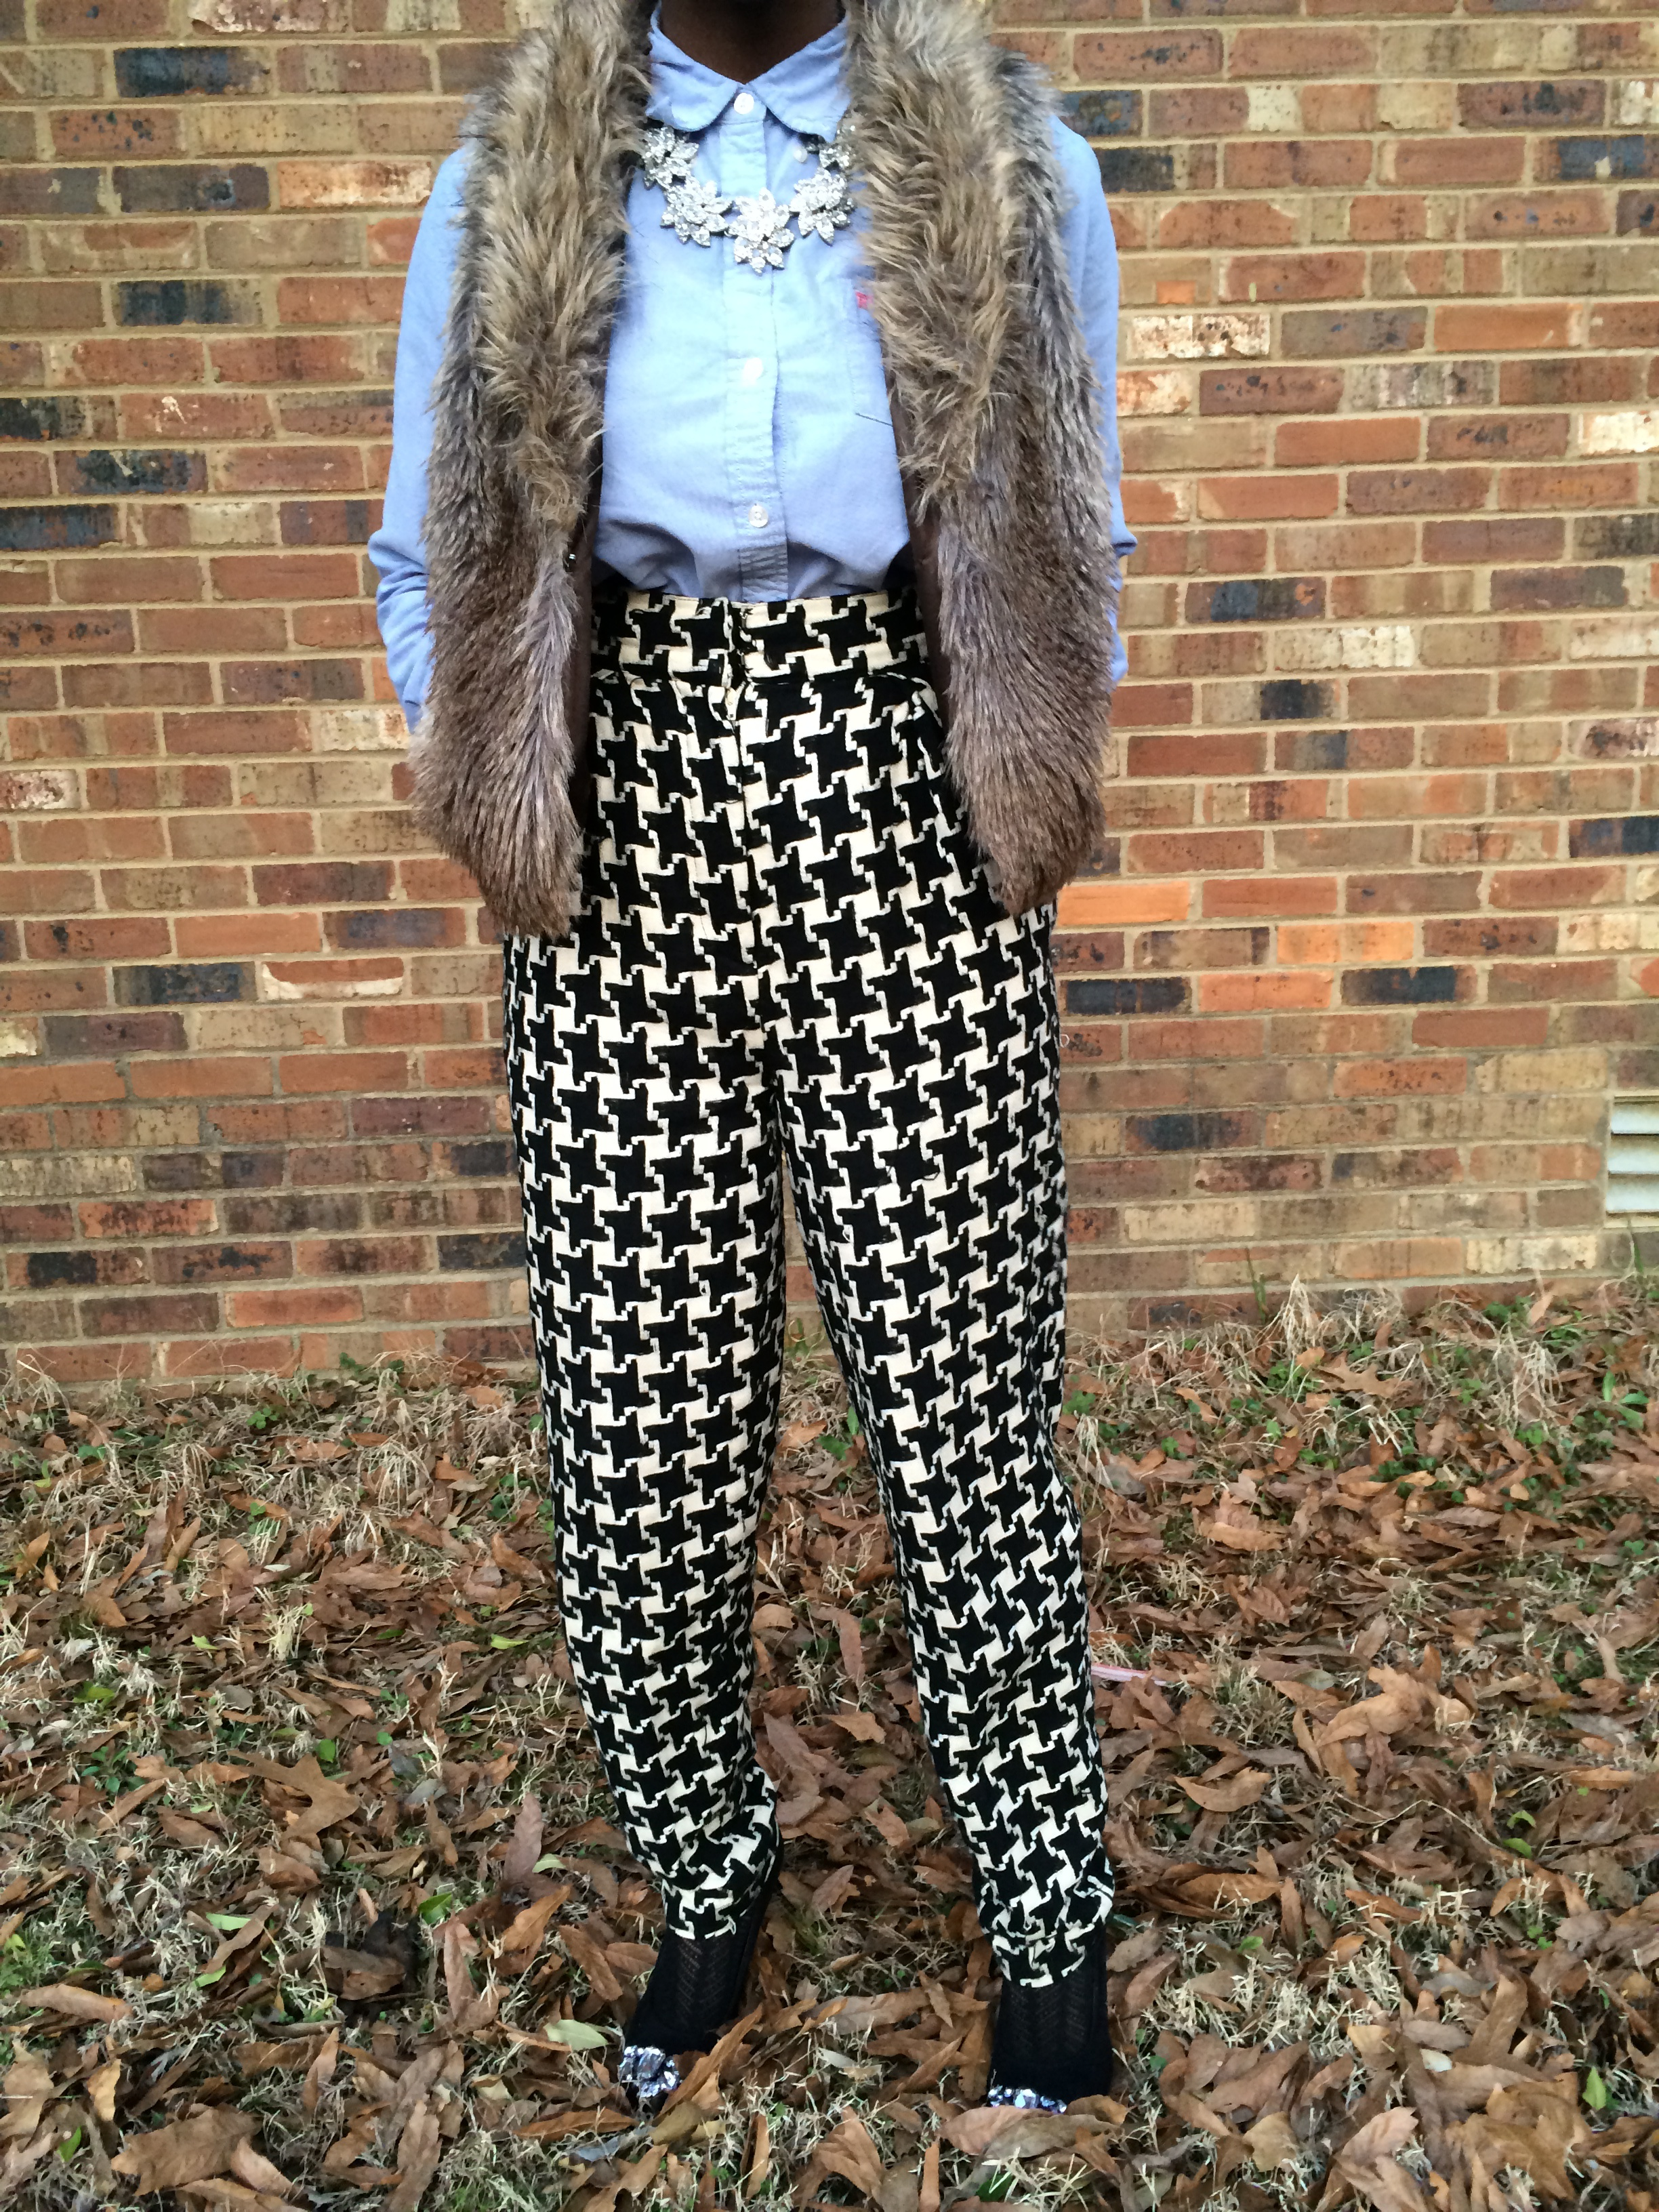 outfit details- fur vest: Express; shirt: Ralph Lauren; pants: vintage; shoes: ASOS